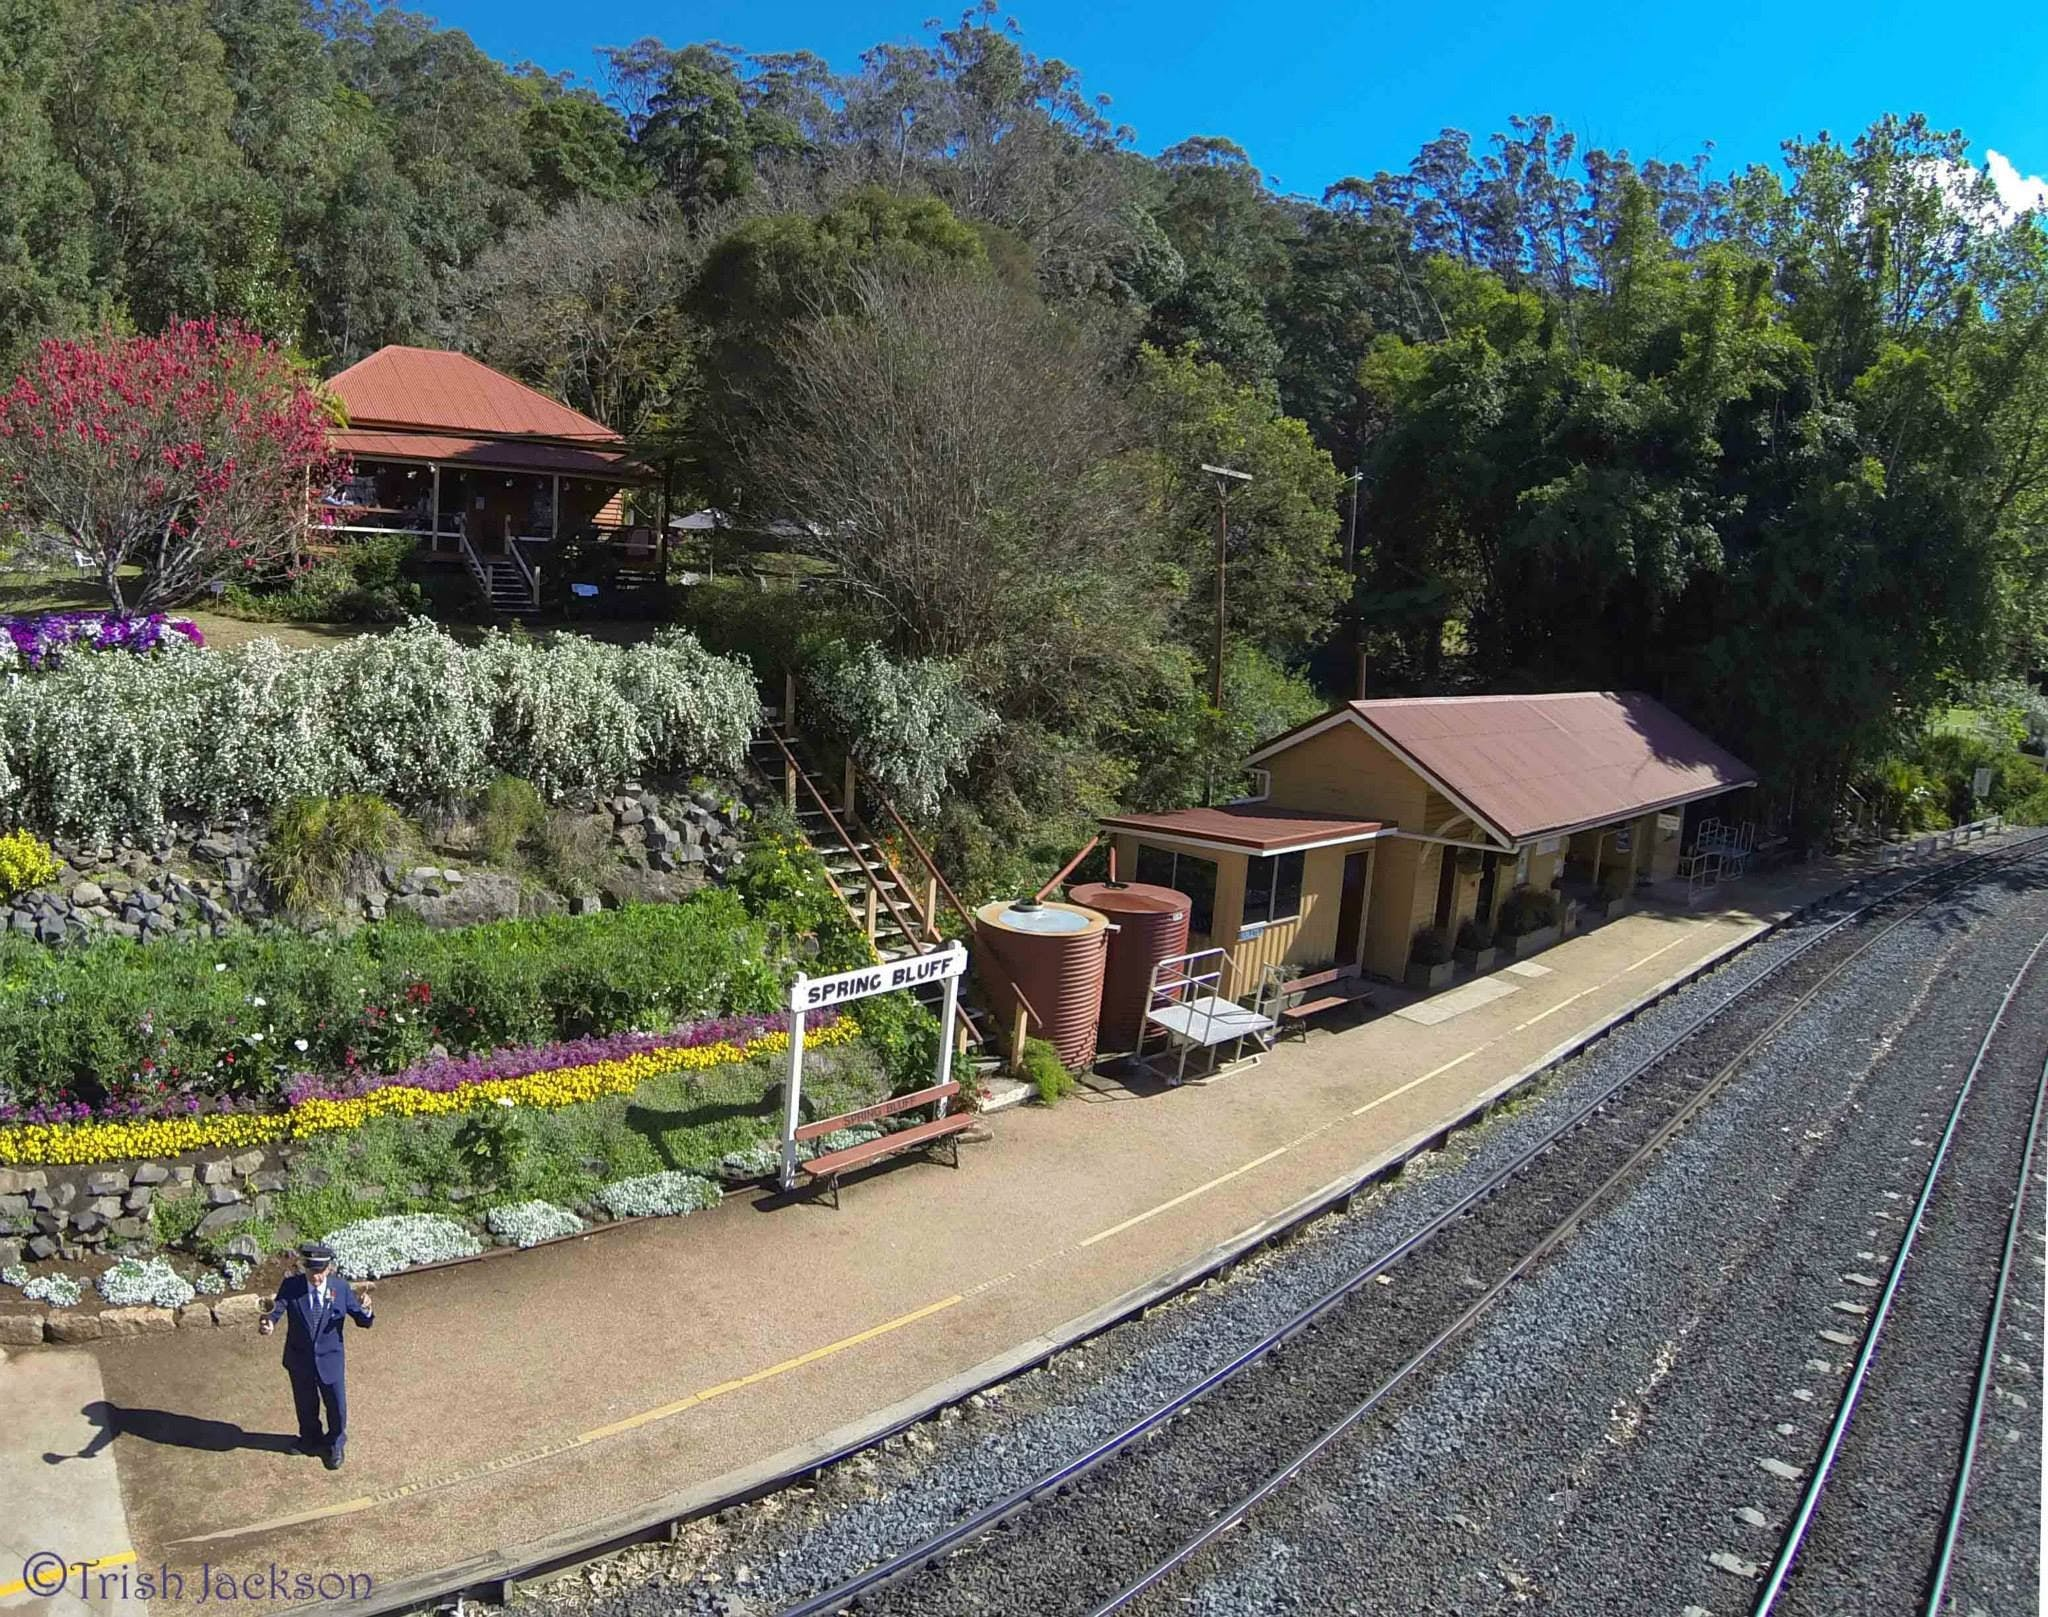 Spring Bluff Railway Station - New South Wales Tourism